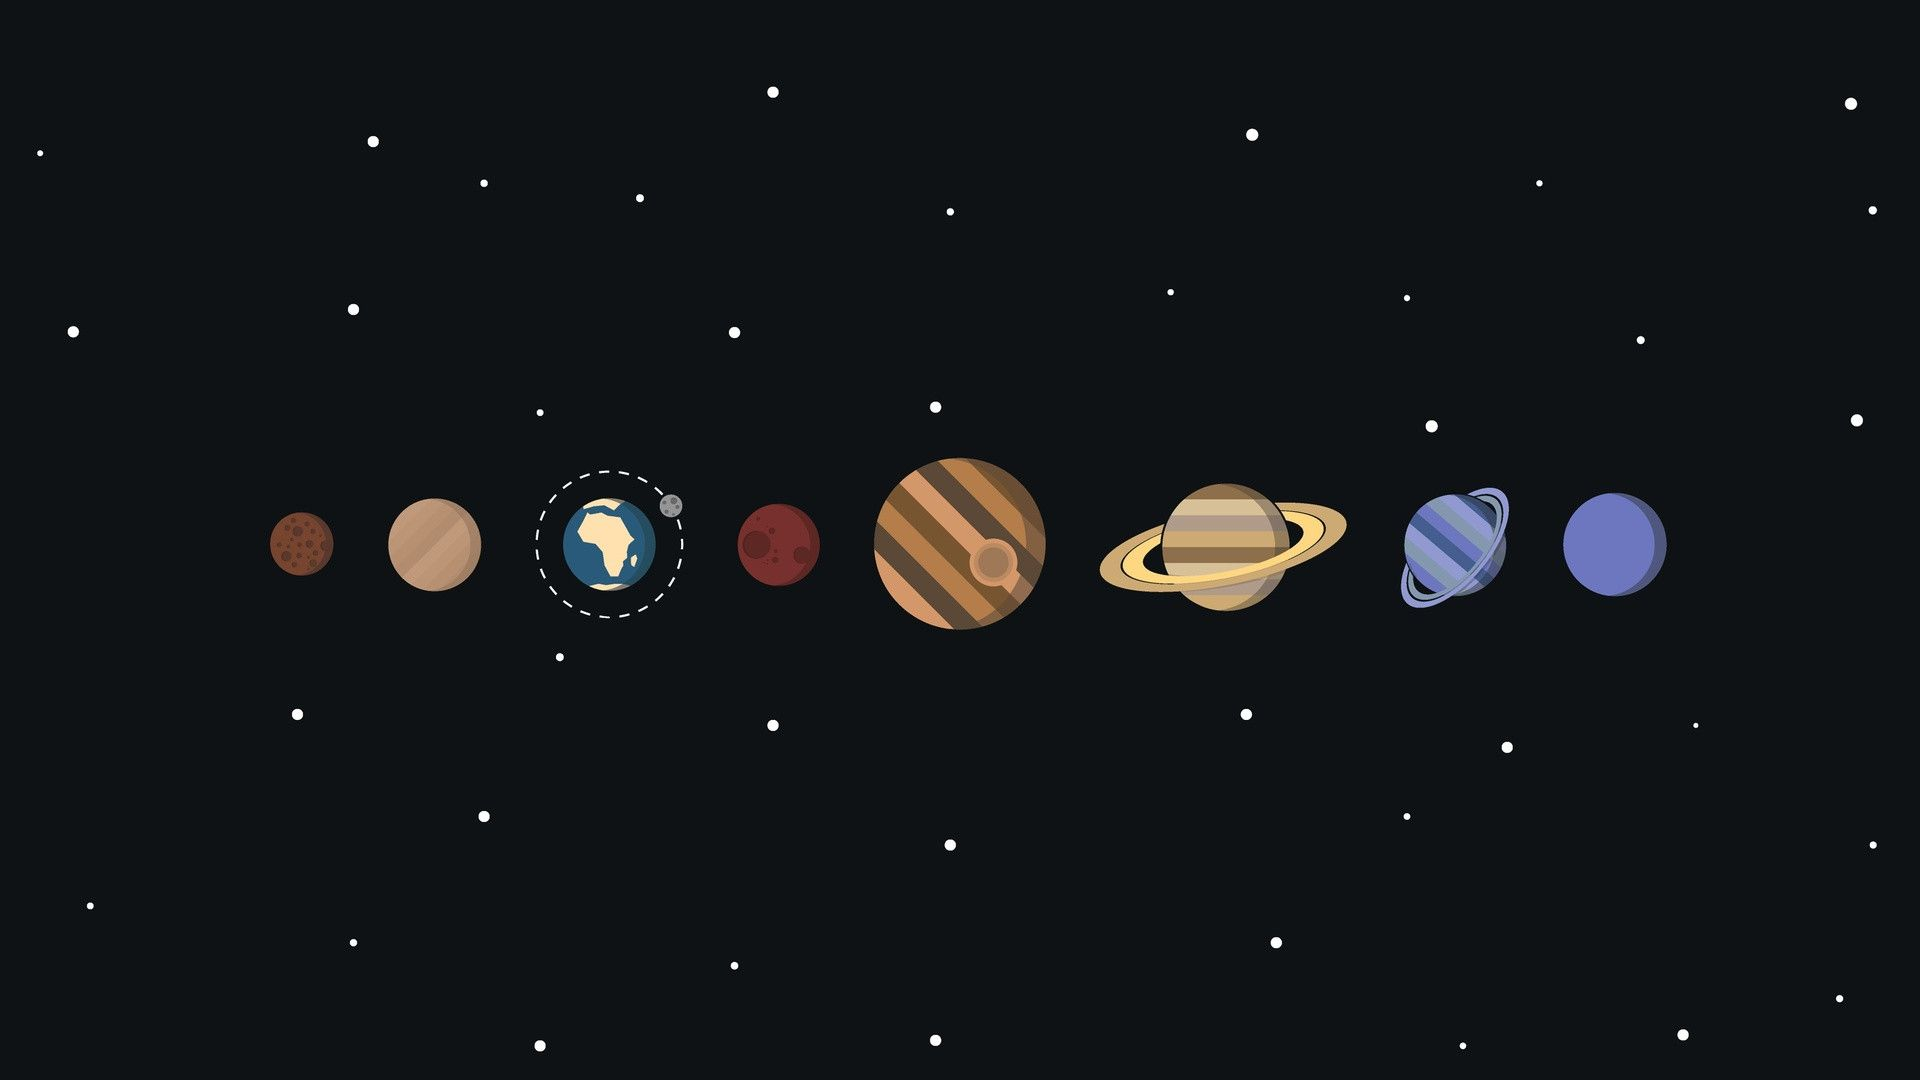 Solar System System Wallpaper Desktop Wallpaper Art Computer Wallpaper Desktop Wallpapers